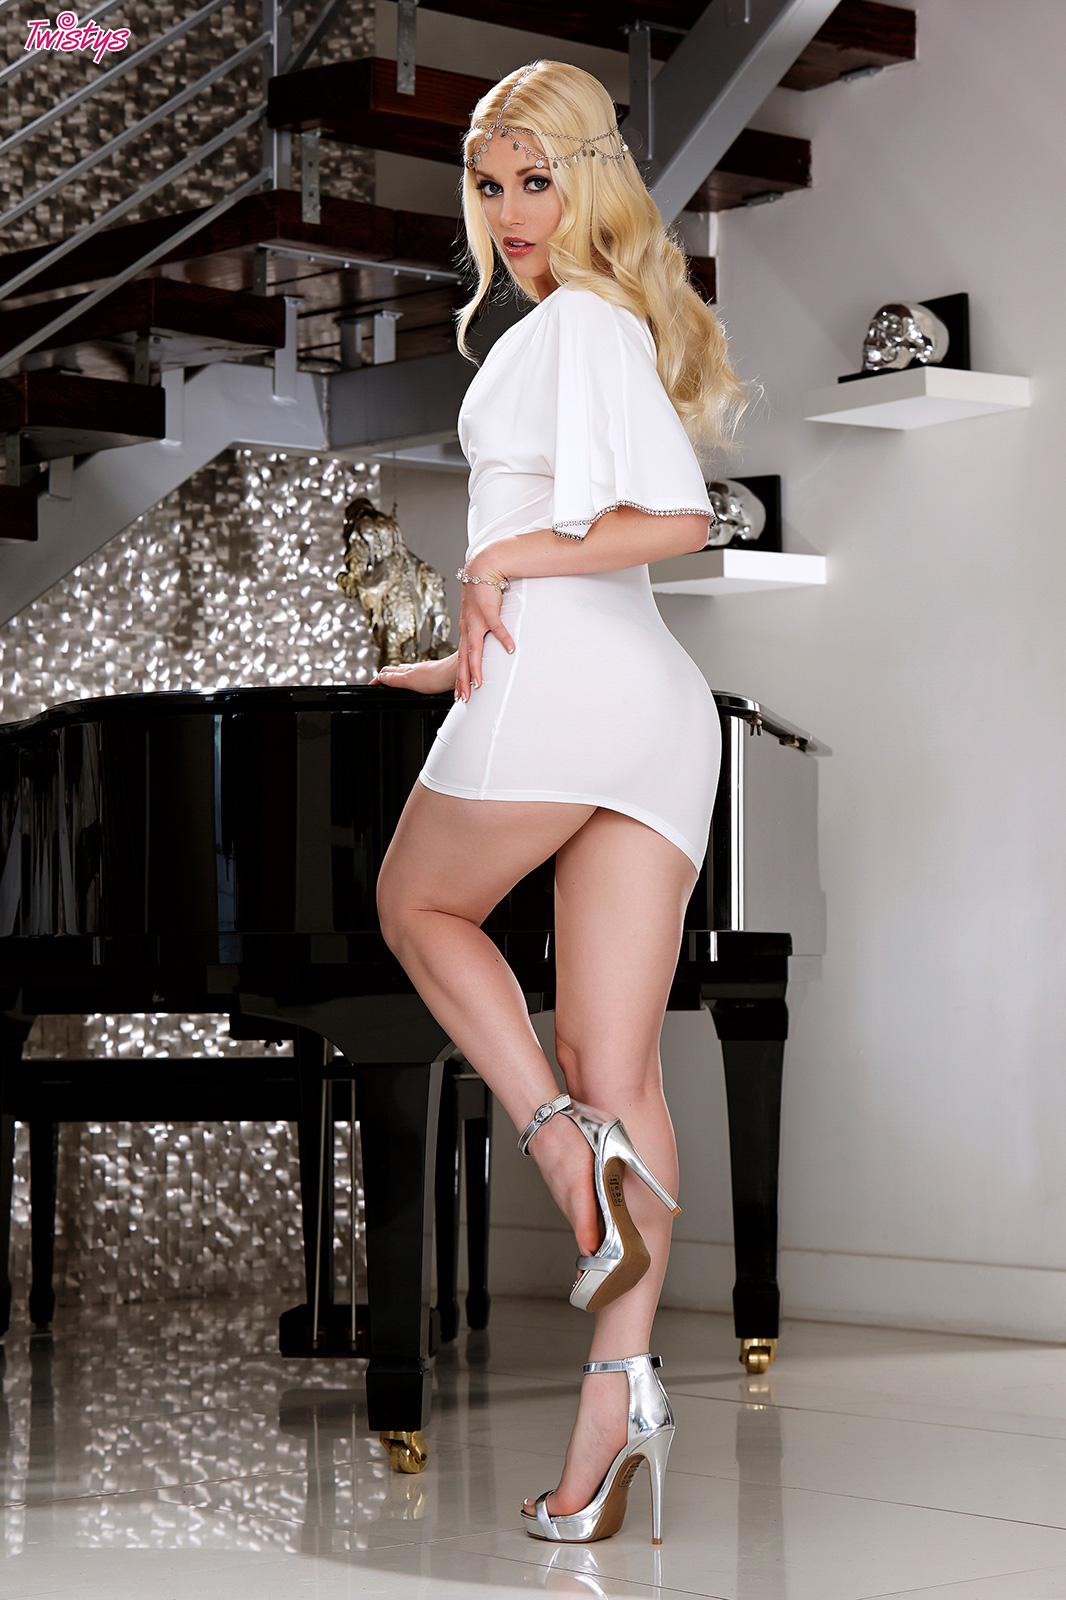 Musical Muse.. featuring Charlotte Stokely | Twistys.com